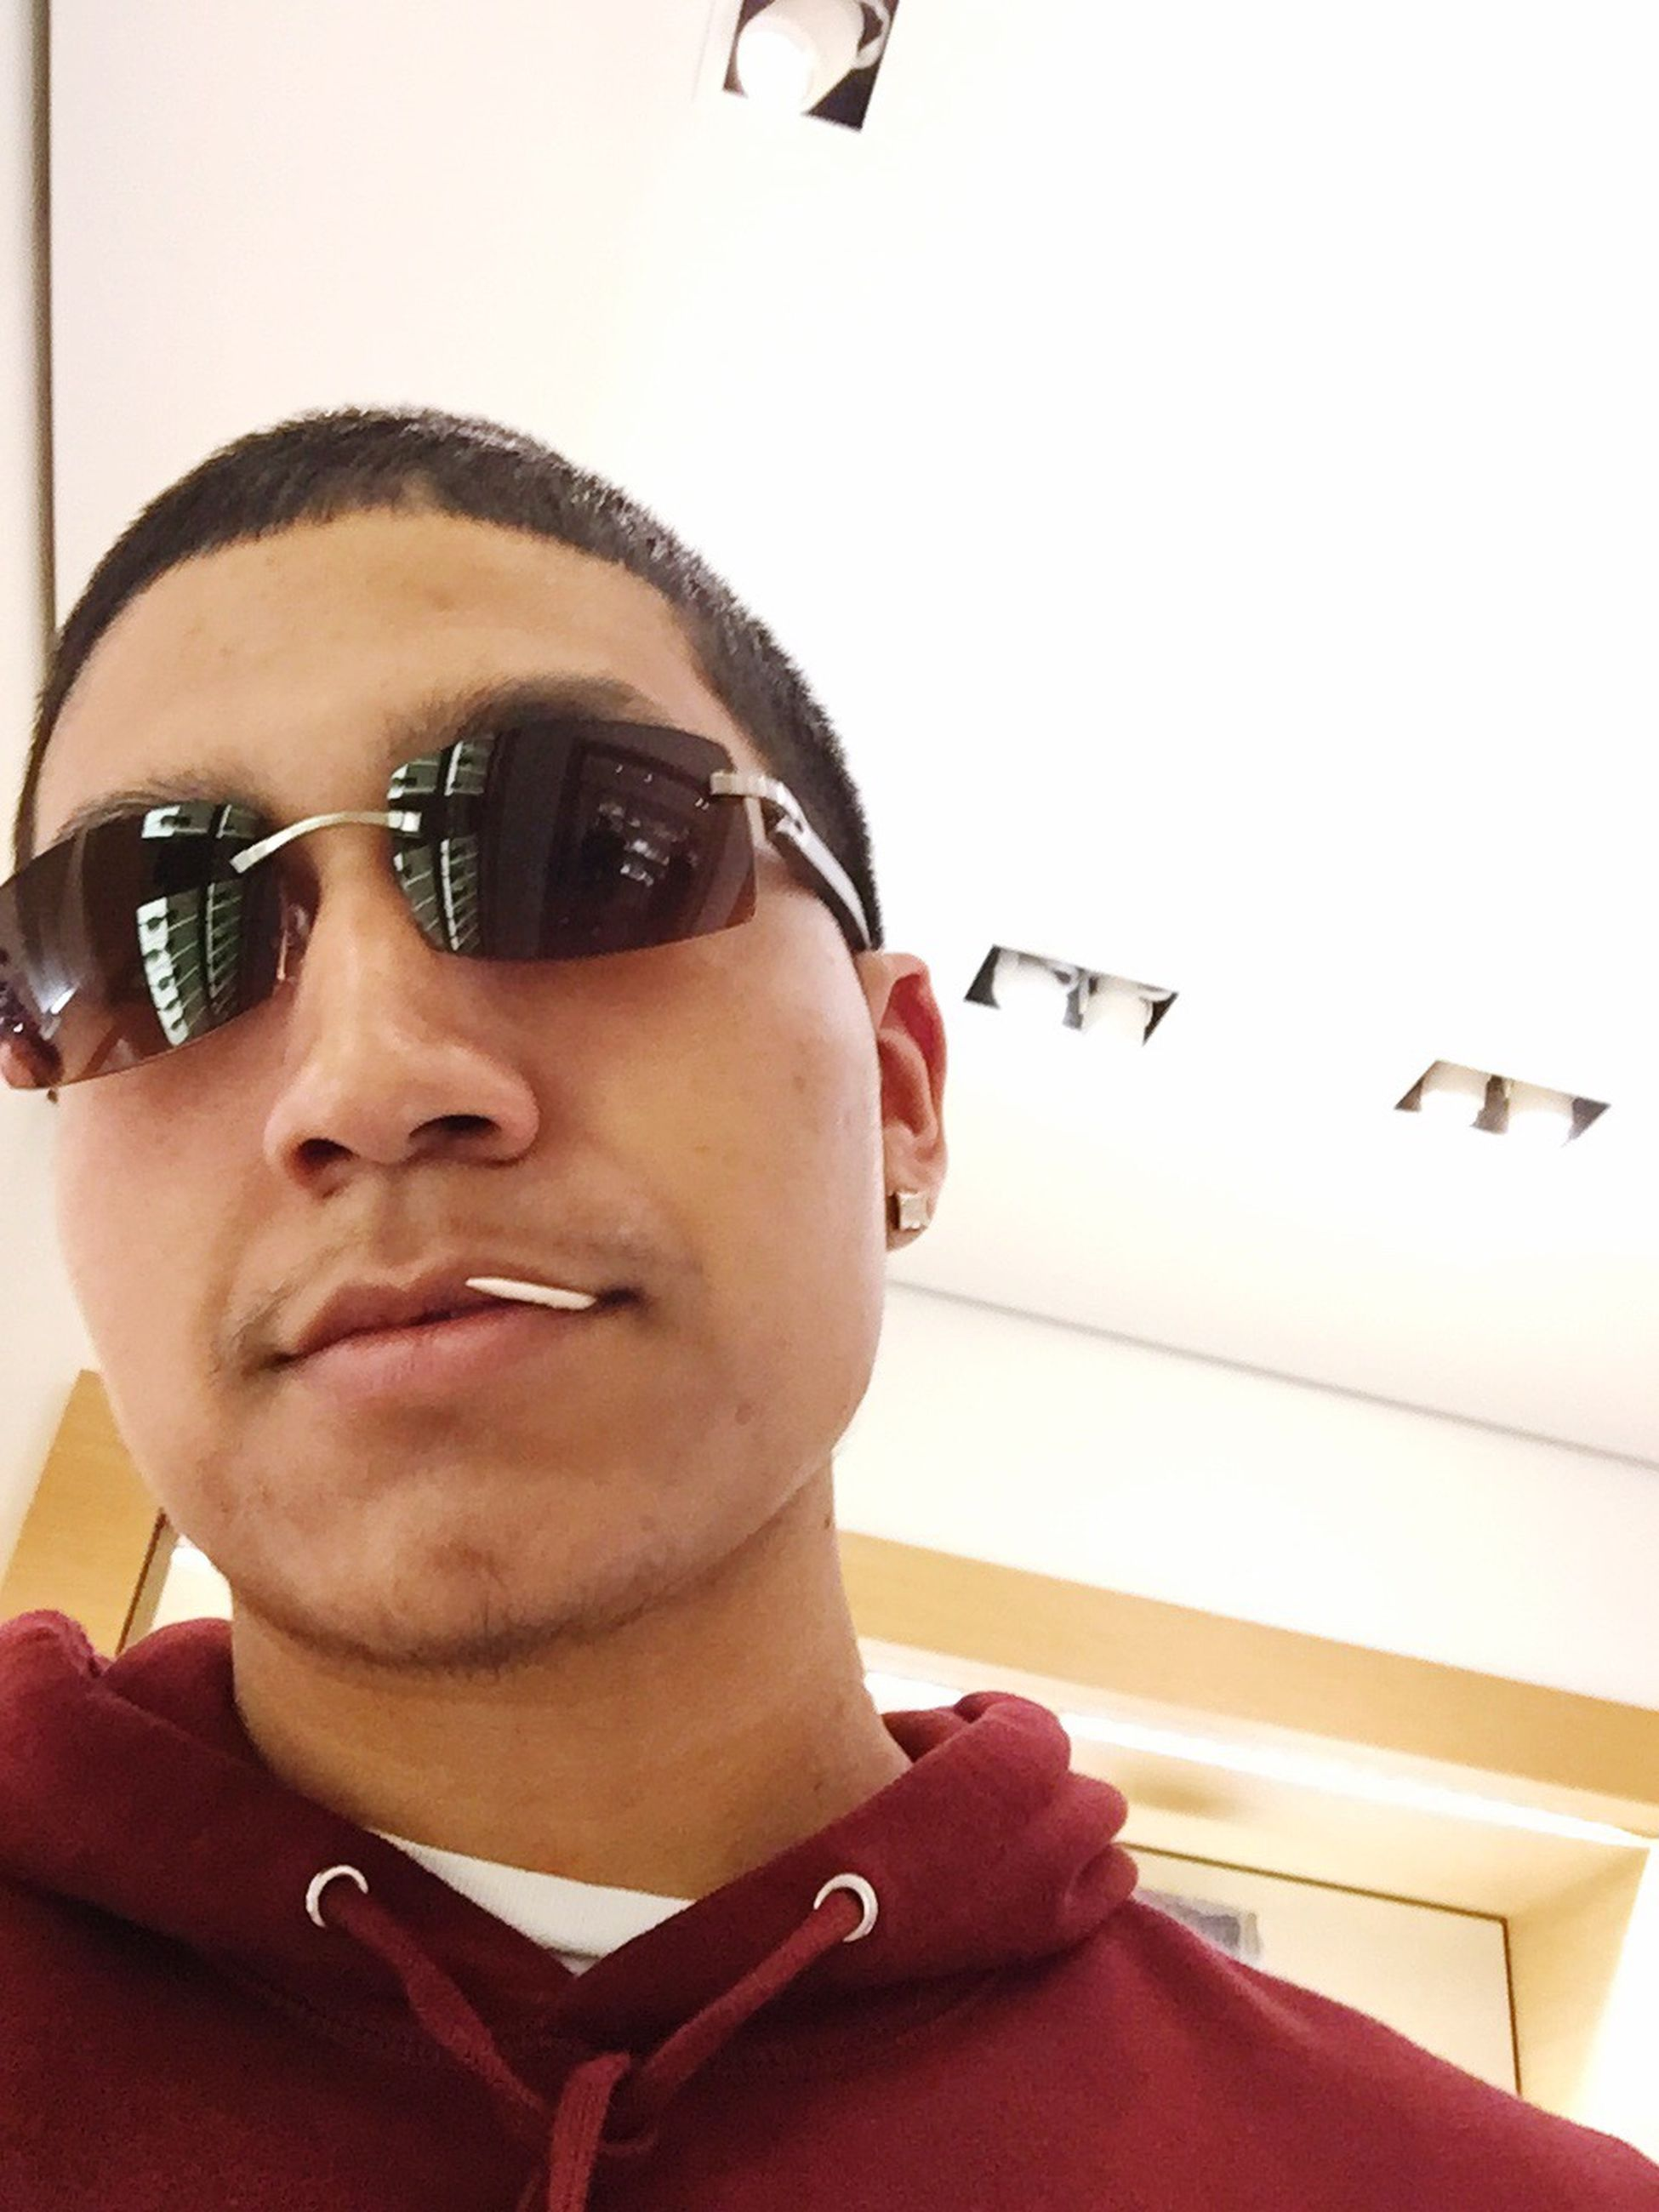 looking at camera, portrait, lifestyles, headshot, young adult, person, young men, indoors, leisure activity, front view, head and shoulders, sunglasses, close-up, smiling, casual clothing, mid adult men, mid adult